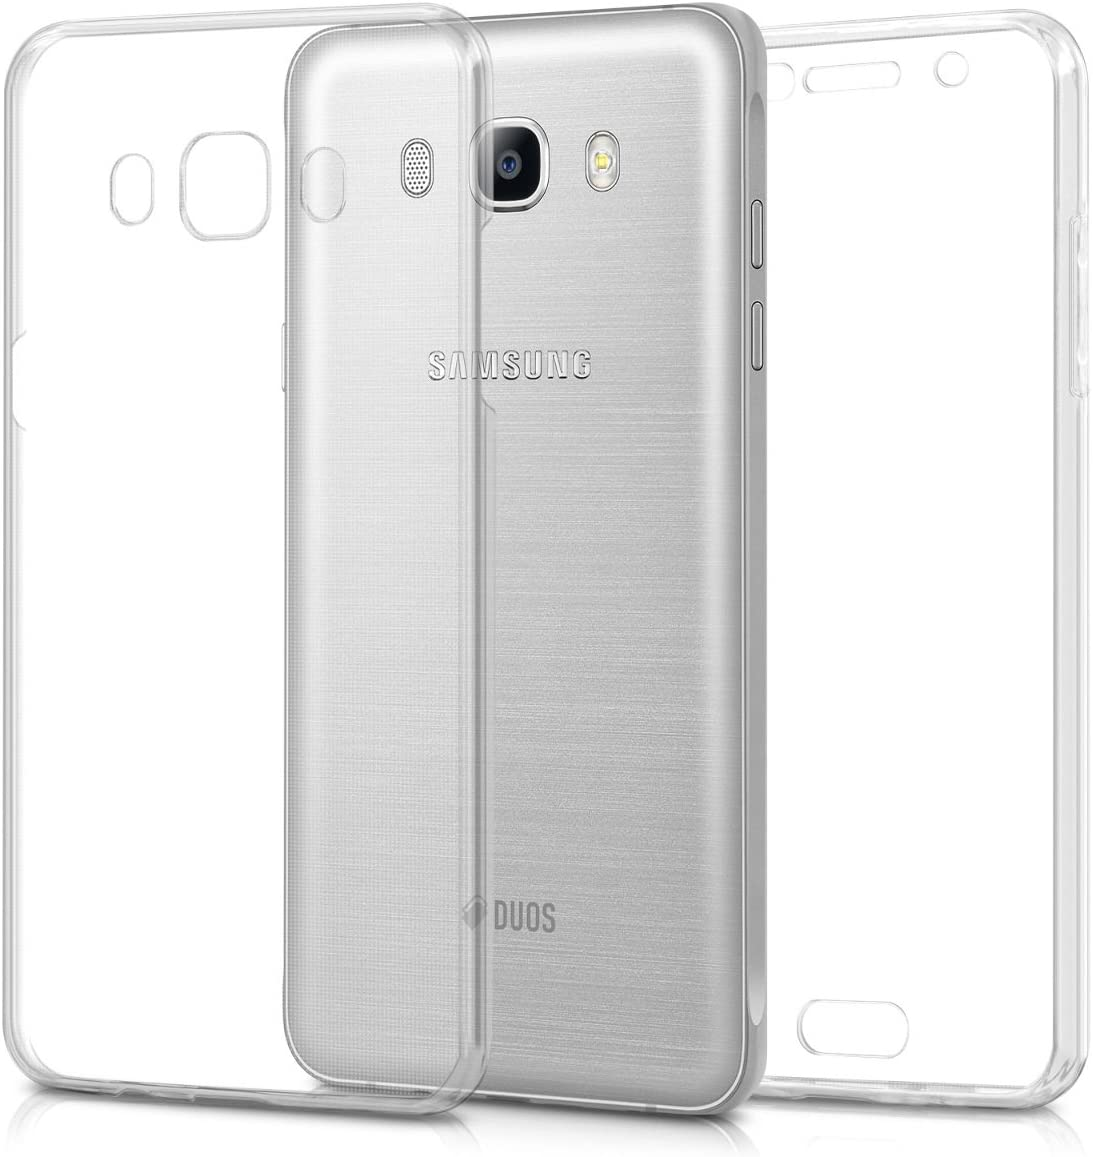 kwmobile Case Compatible with Samsung Galaxy J5 (2016) DUOS - Case Crystal Clear TPU Silicone Protective Cover Full Body Case - Transparent